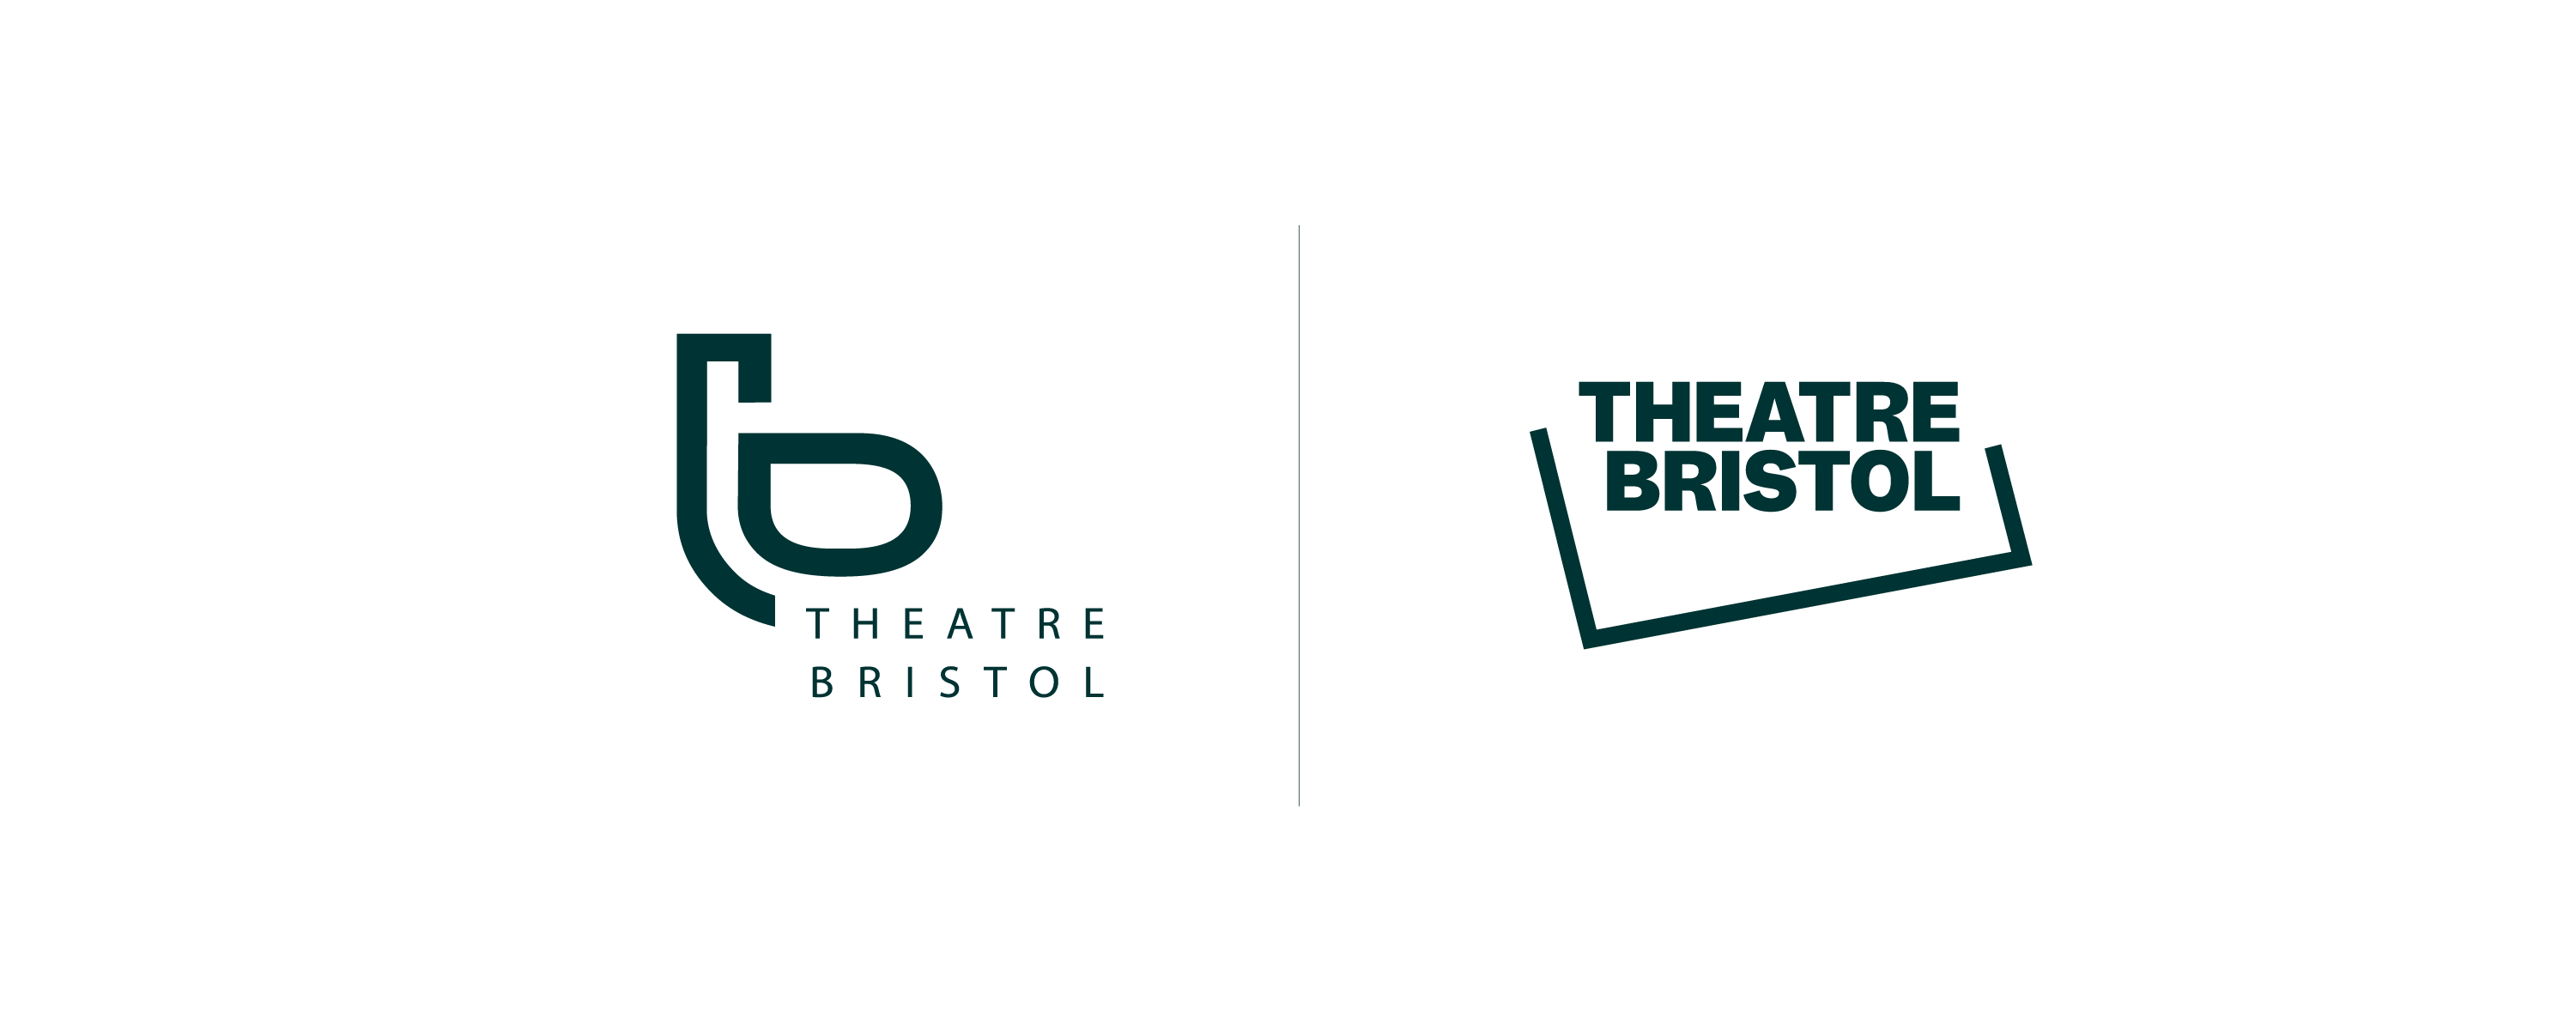 Theatre Bristol Logo Before and After